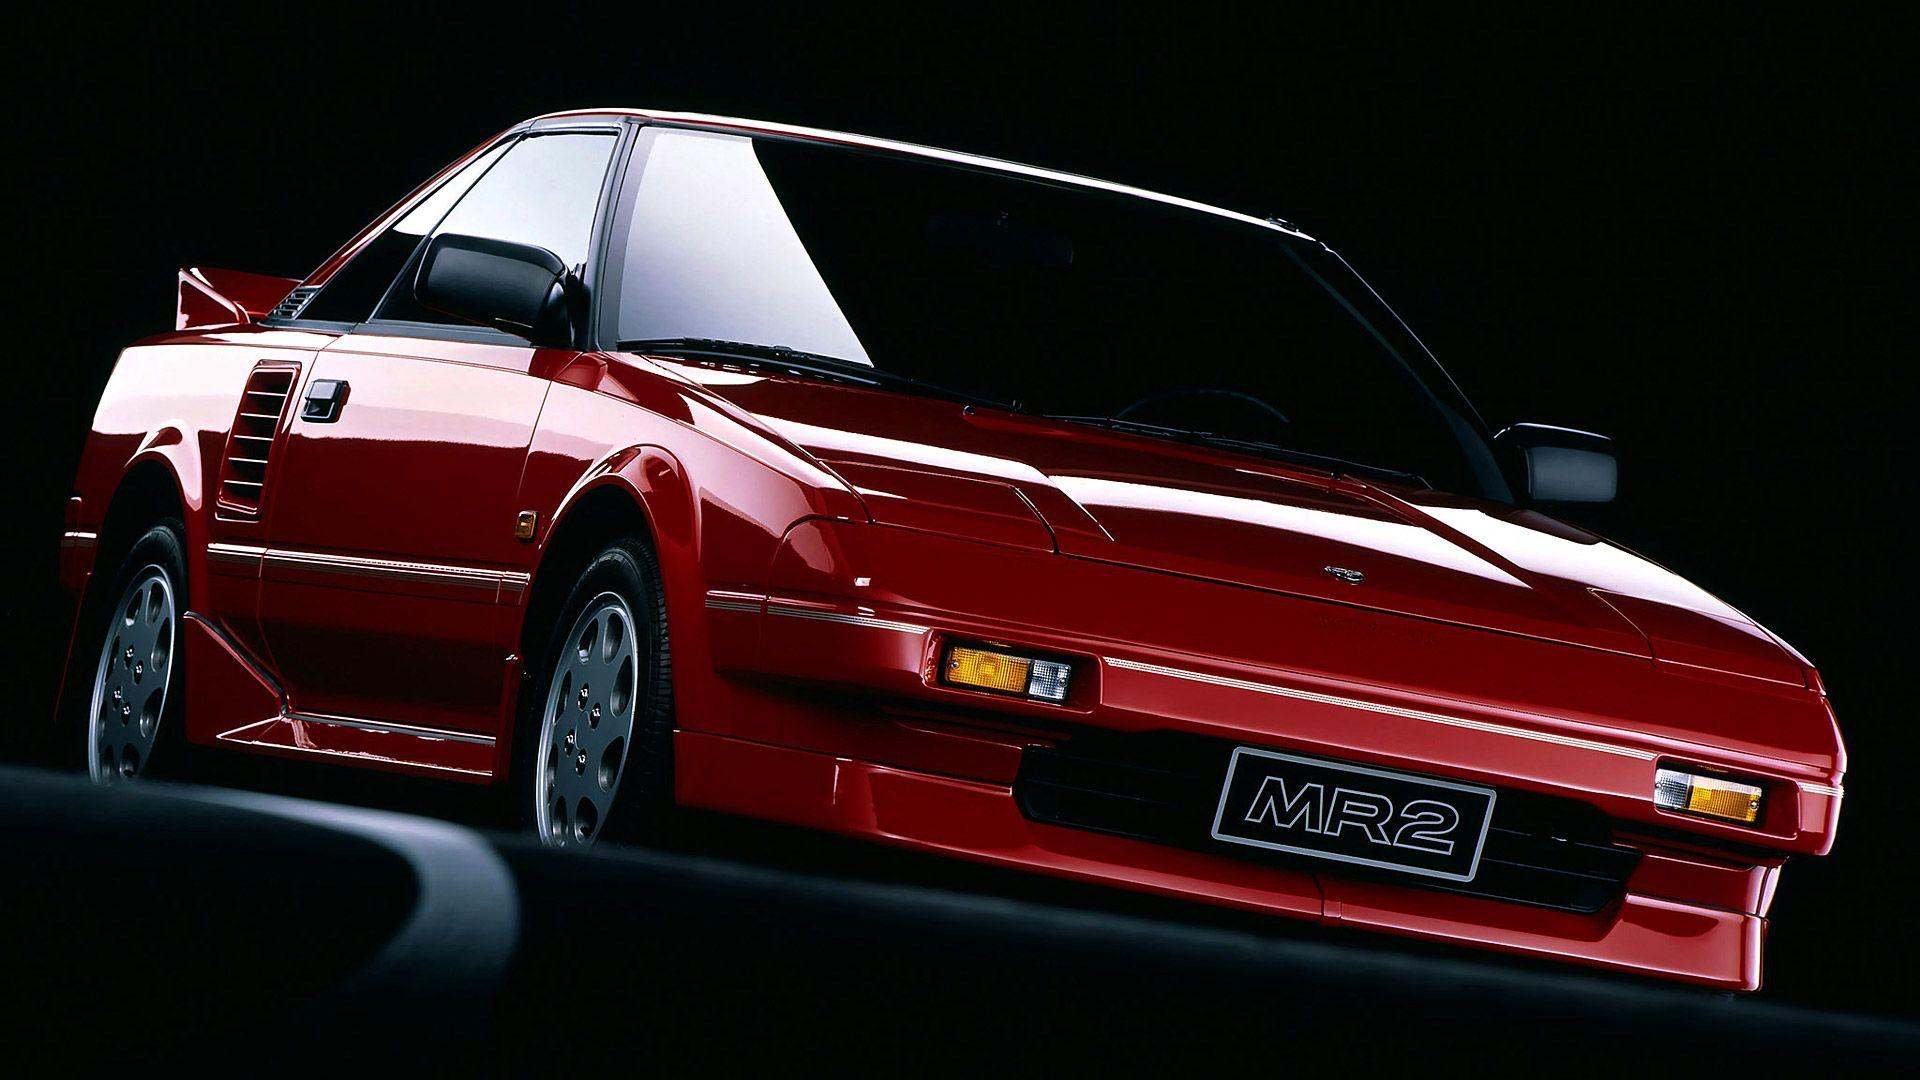 1988 Toyota MR2 SC Wallpapers & HD Image